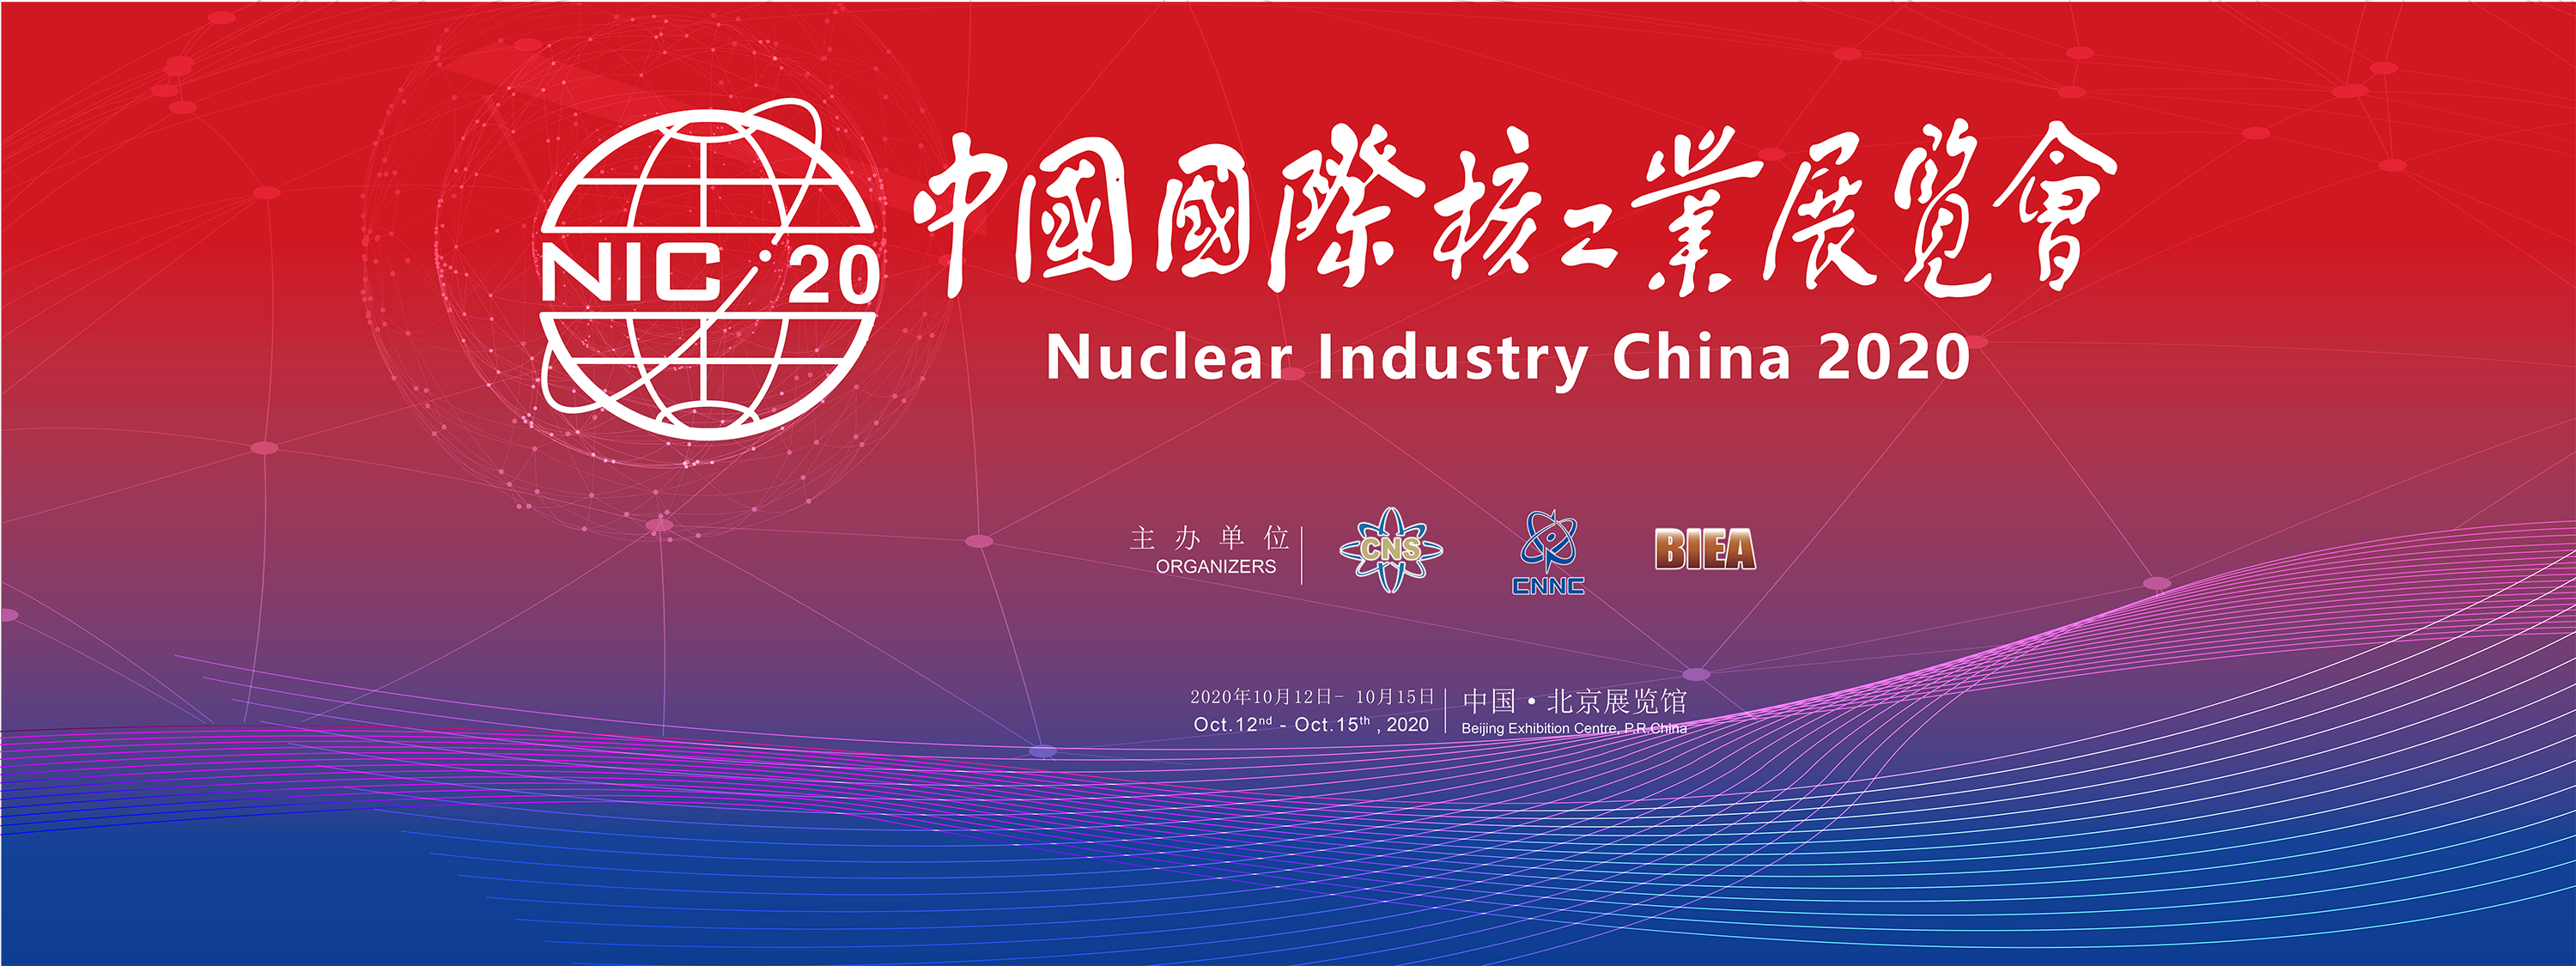 Nuclear Industry China 2020